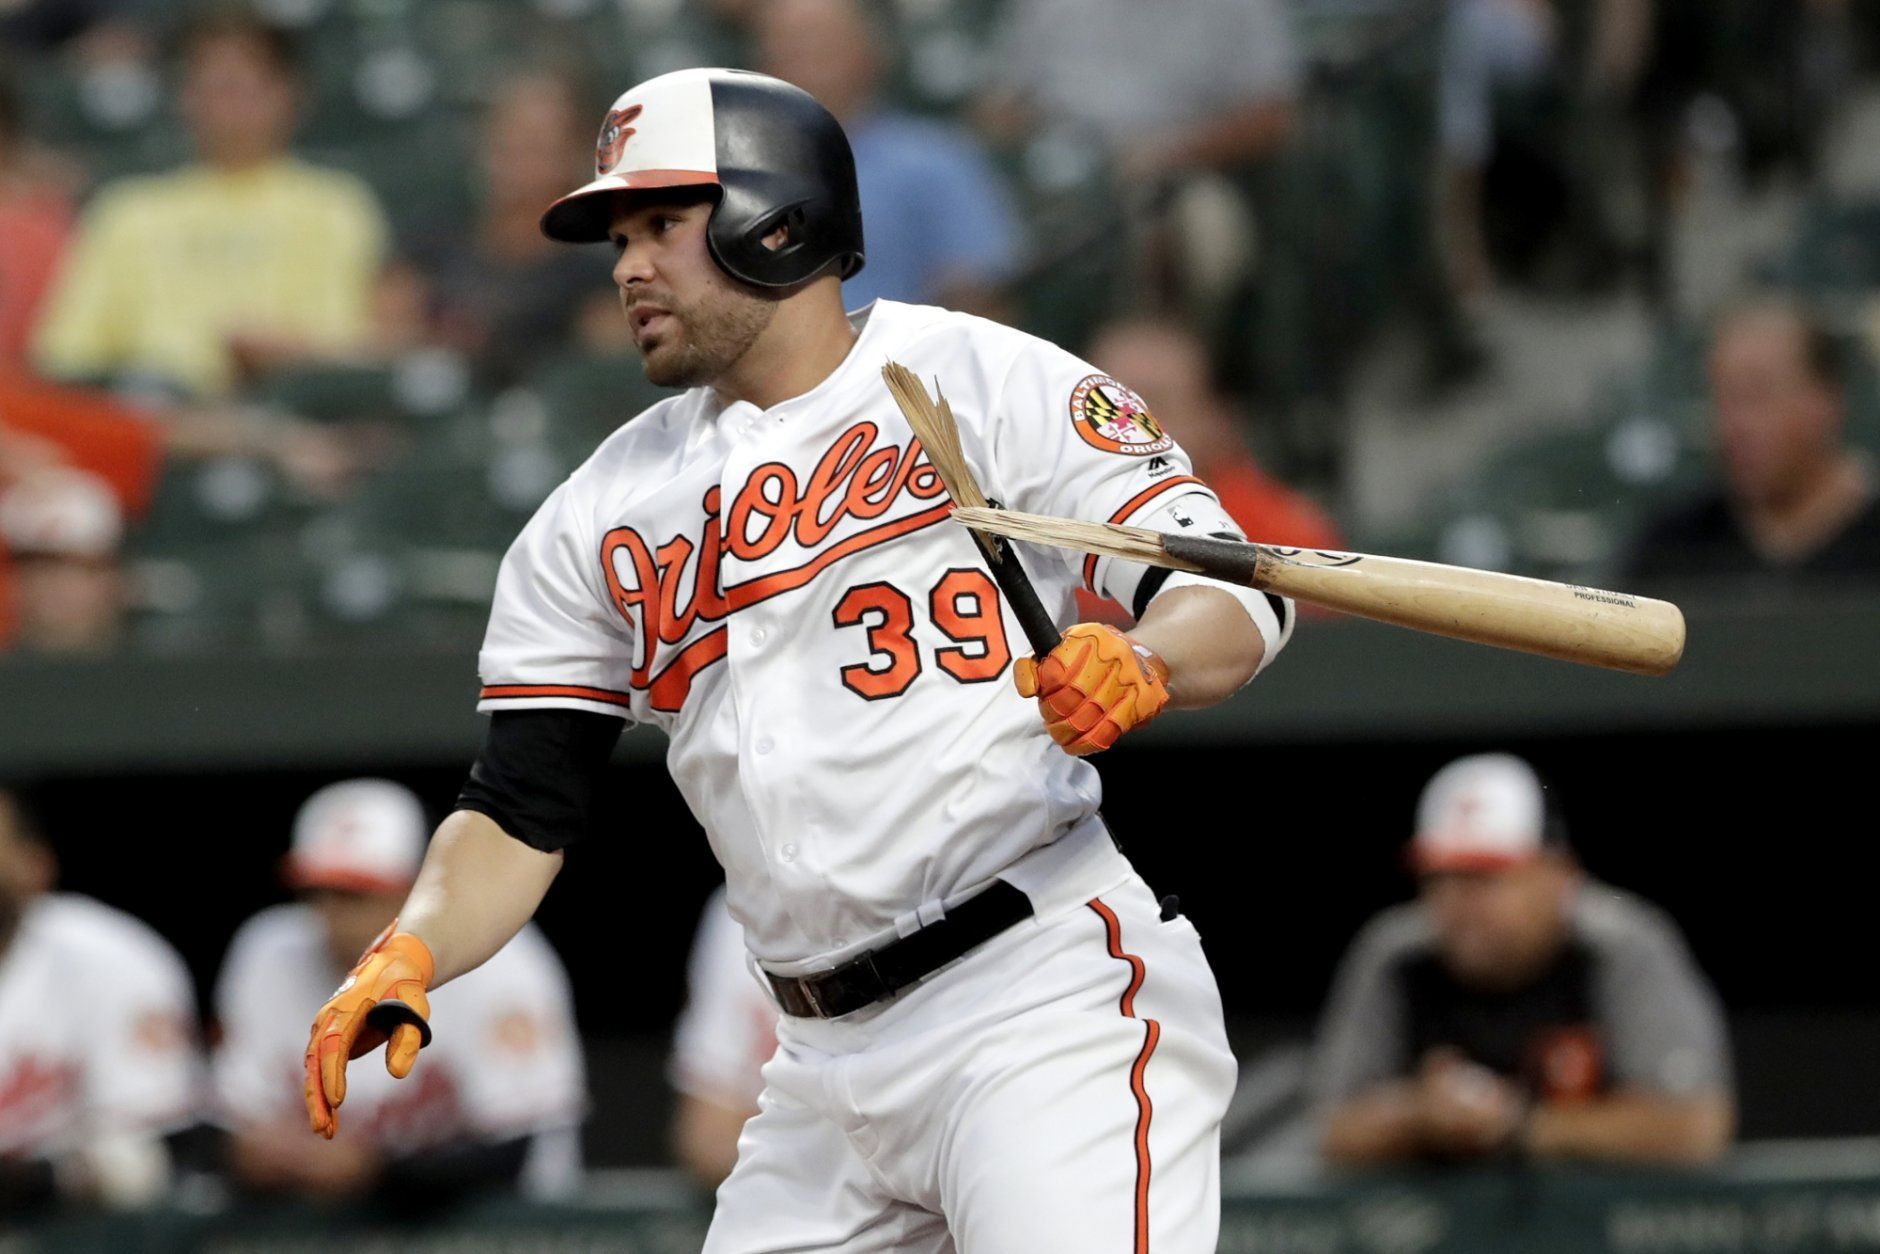 <p>Baltimore Orioles designated hitter Renato Nunez breaks his bat while grounding out to the Kansas City Royals during the first inning of a baseball game Tuesday, Aug. 20, 2019, in Baltimore.</p>